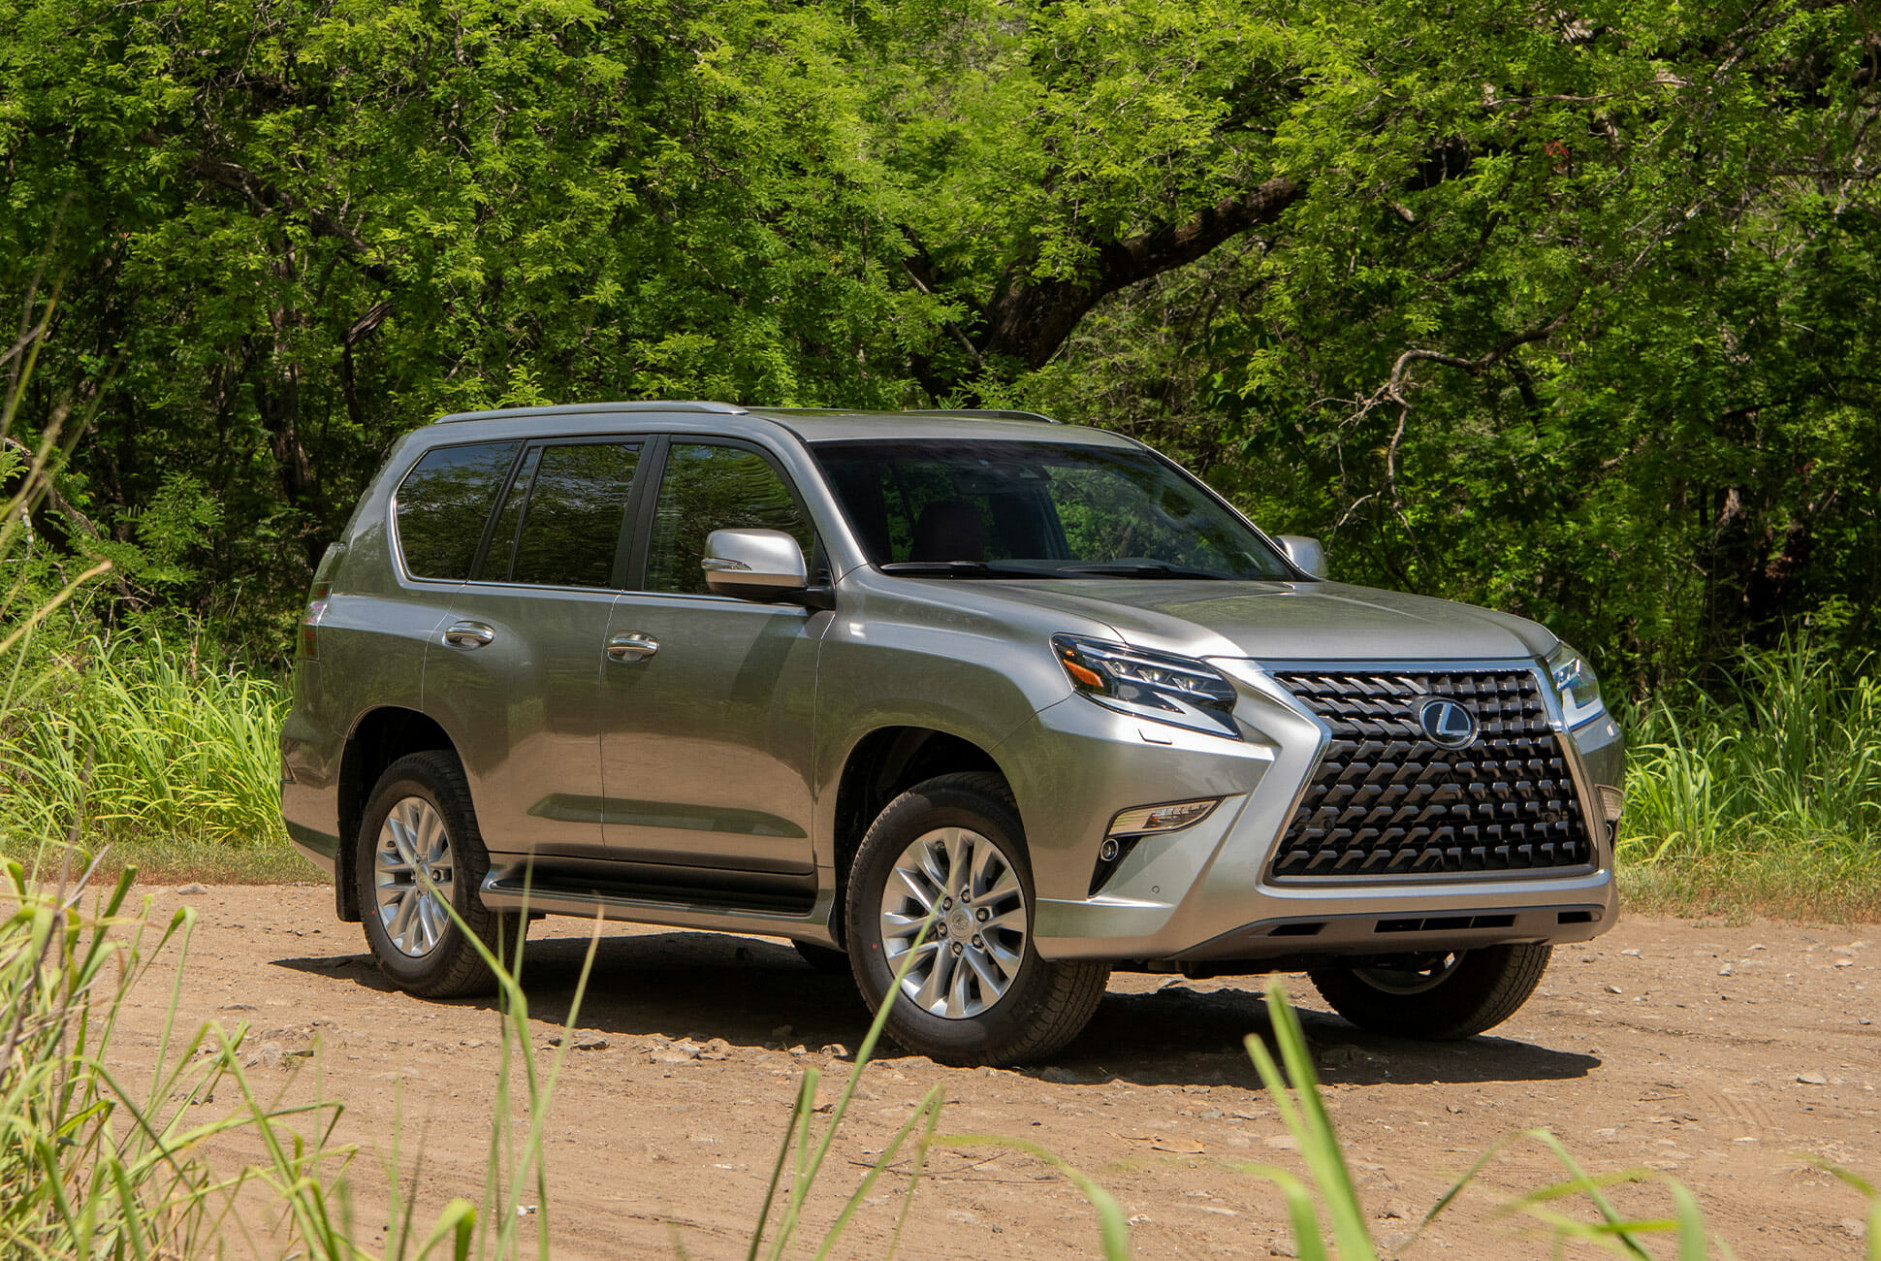 7 Lexus GX 7 Review: The Other Leather-Lined Land Cruiser ..